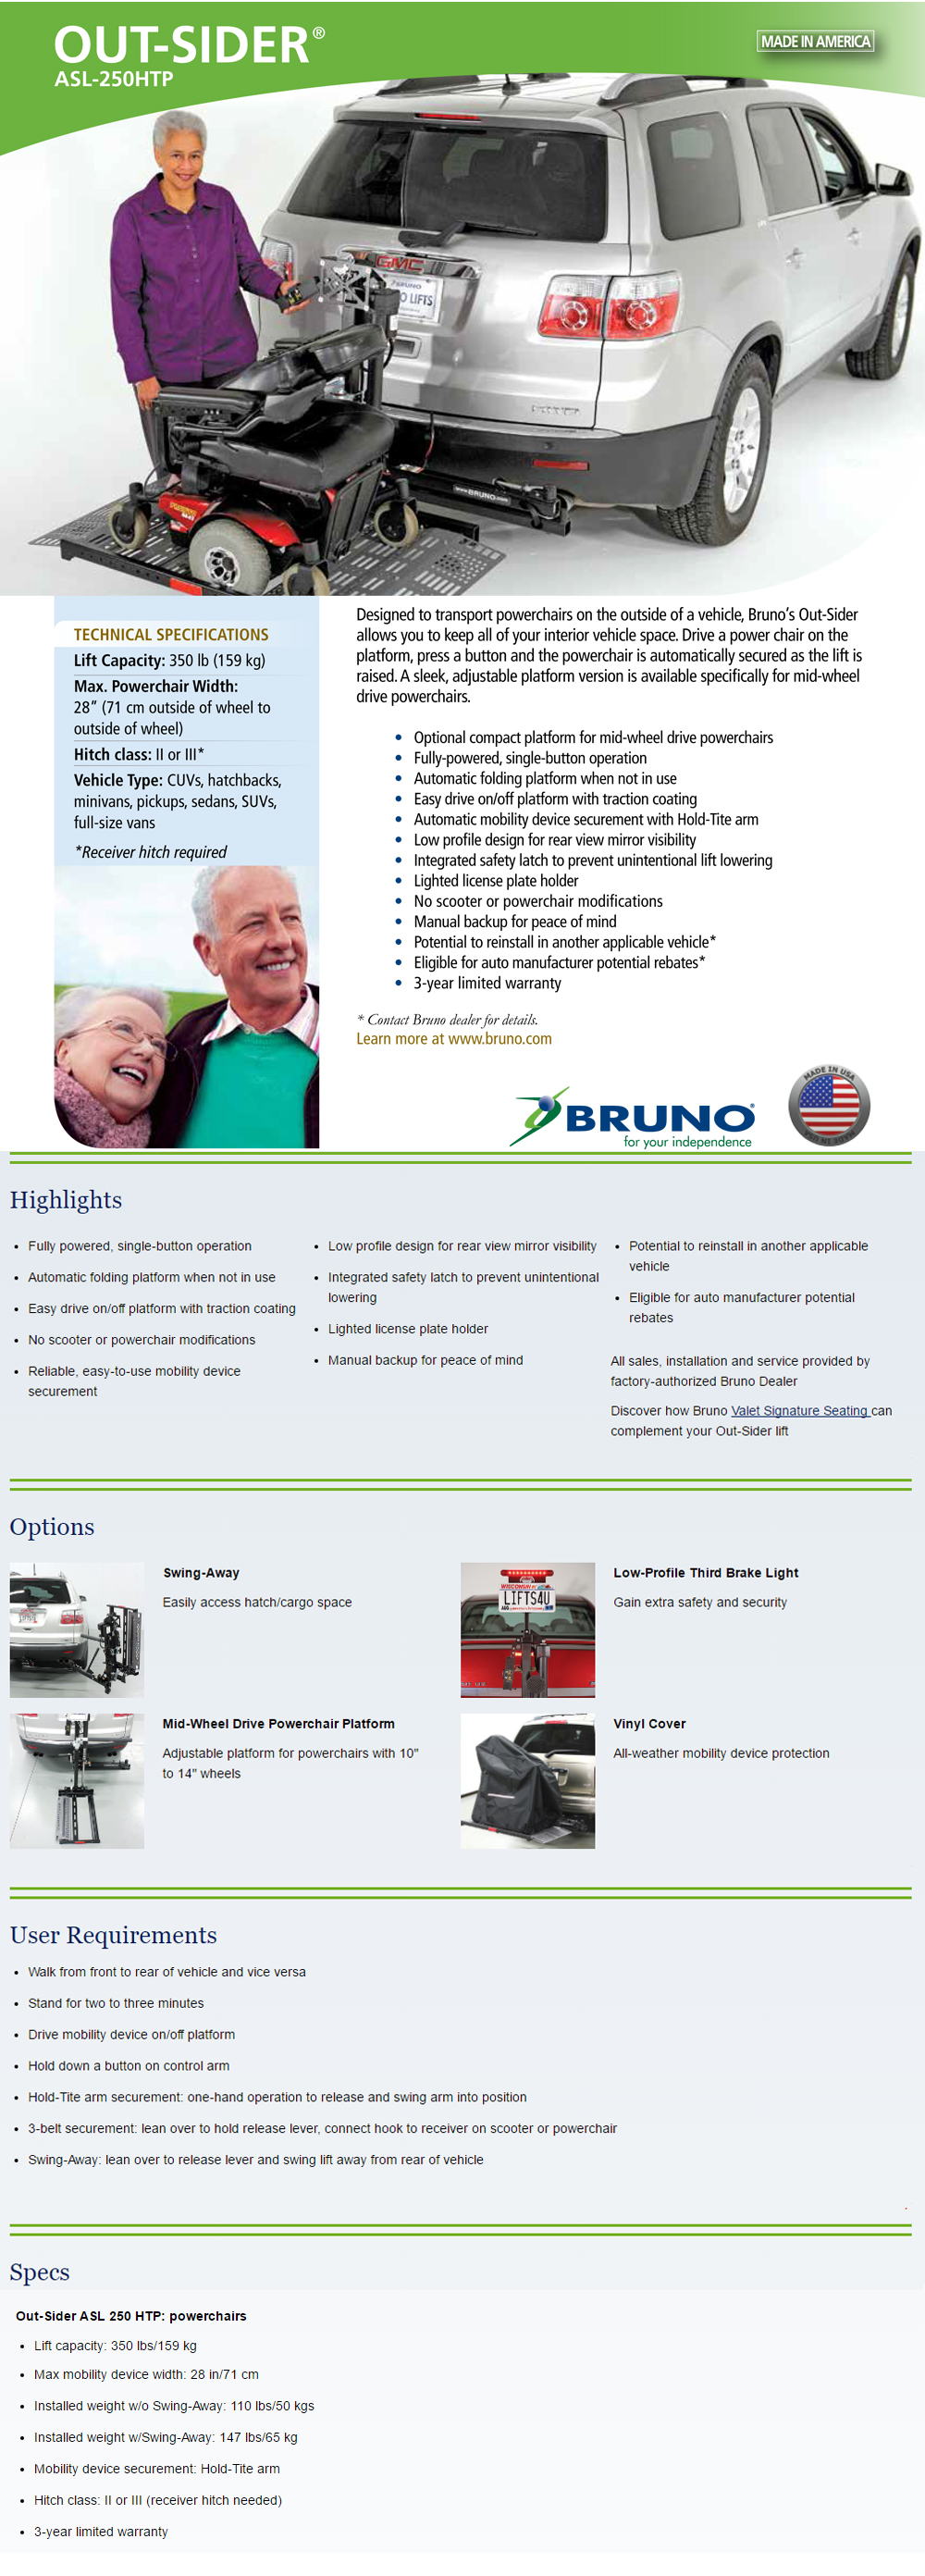 Bruno-ASL250HTP-Outsider-powerchair-electric-lift